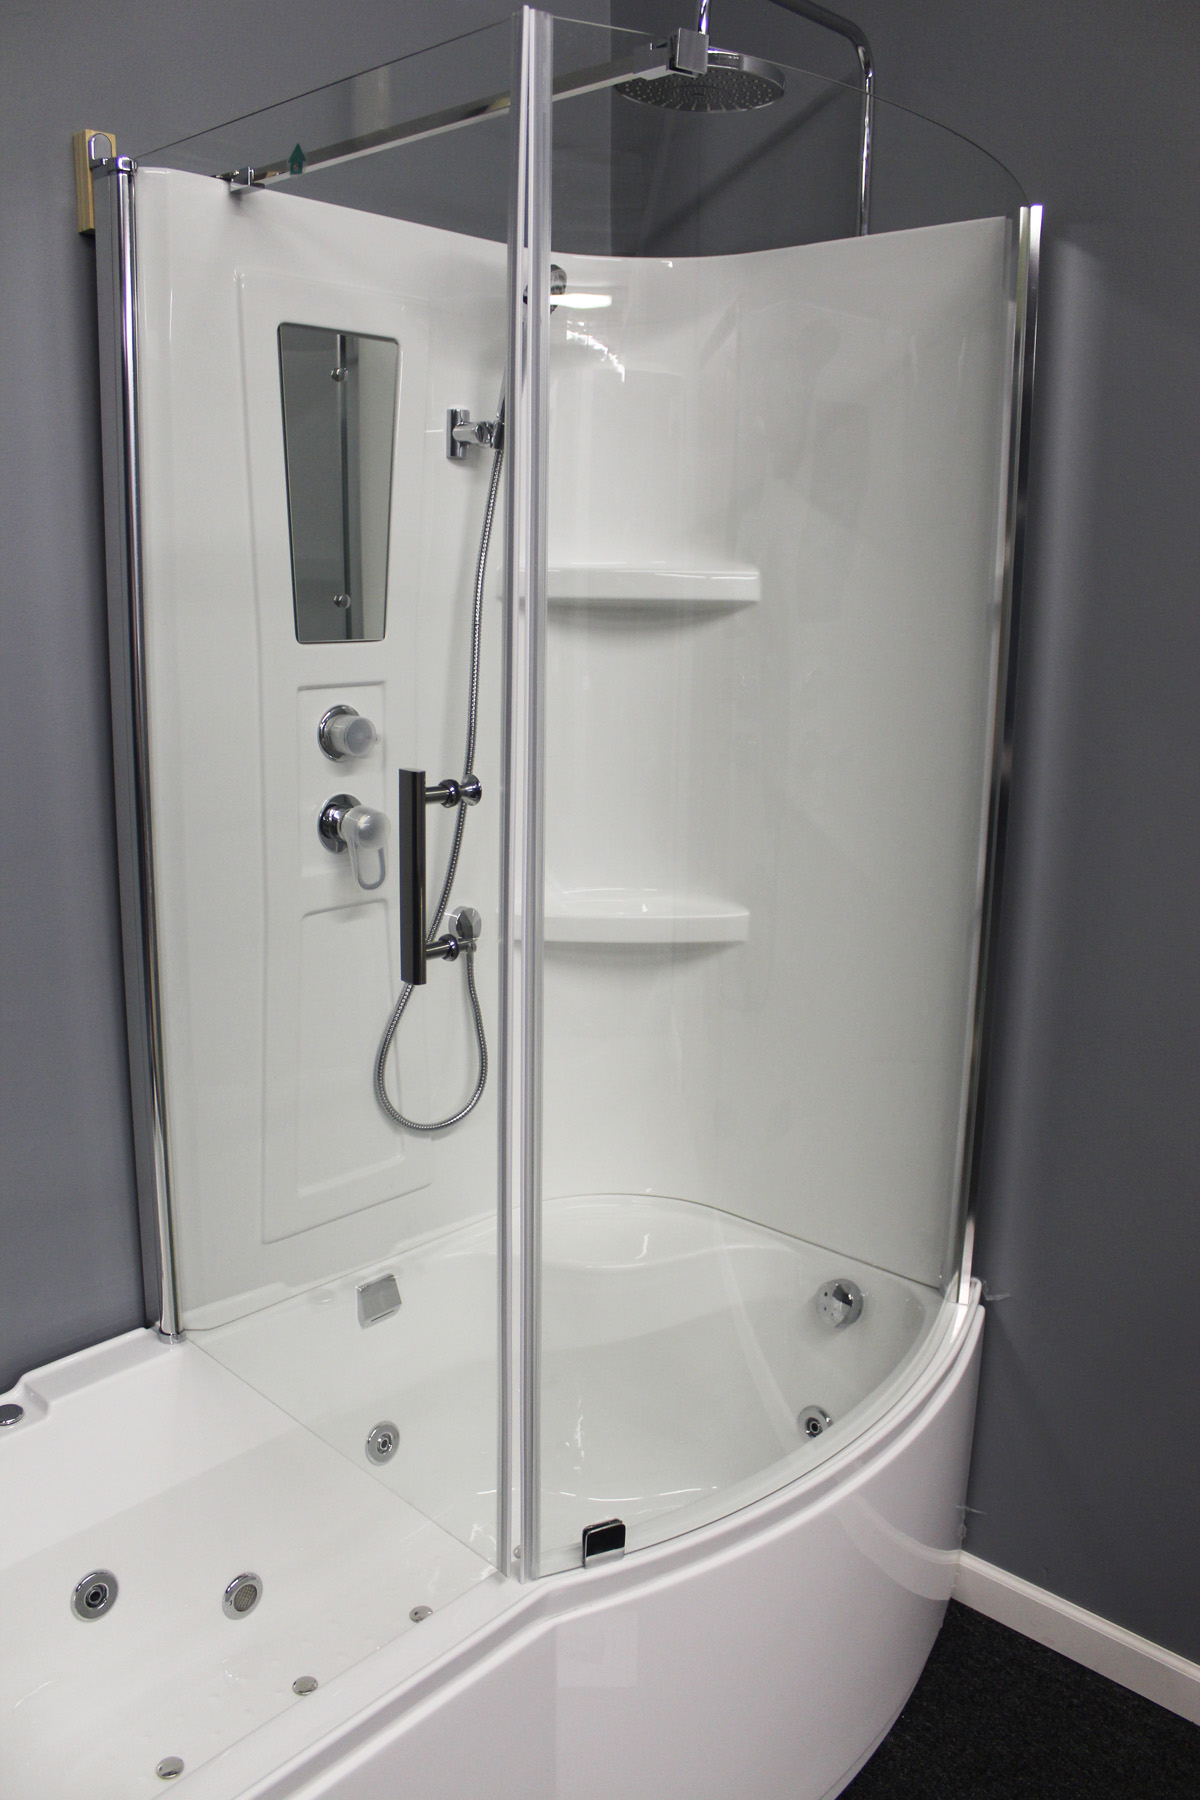 Shower Room With Deluxe Whirlpool Tub 9045 Lux With Air